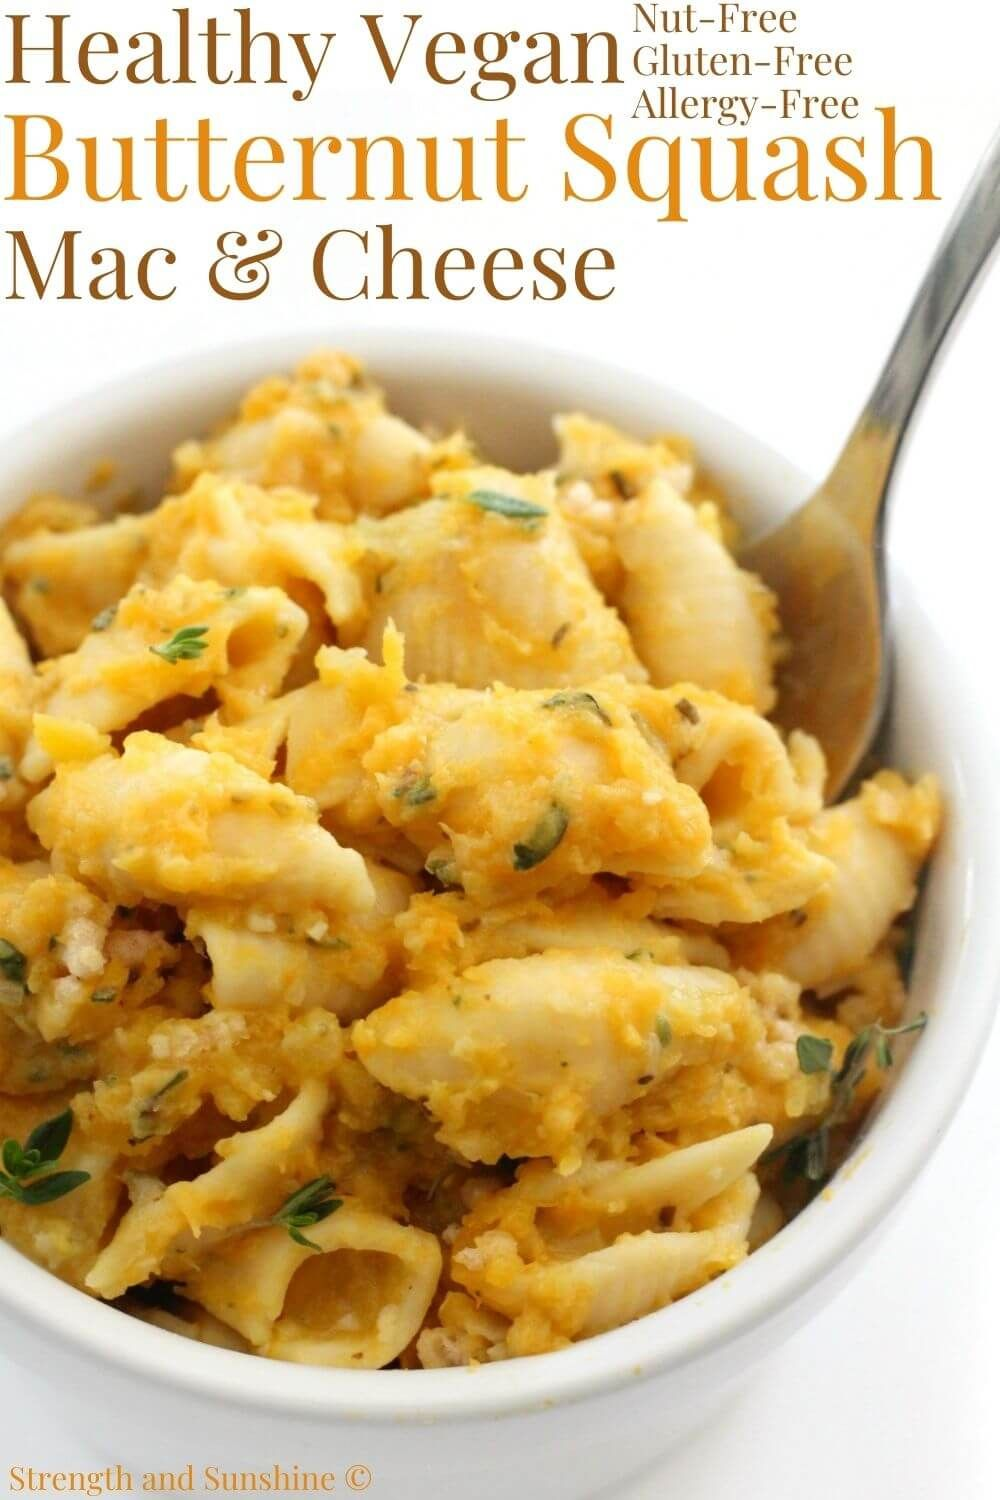 Vegan Butternut Squash Mac And Cheese Gluten Free Allergy Free Recipe In 2020 Butternut Squash Mac And Cheese Recipes Healthy Family Dinners